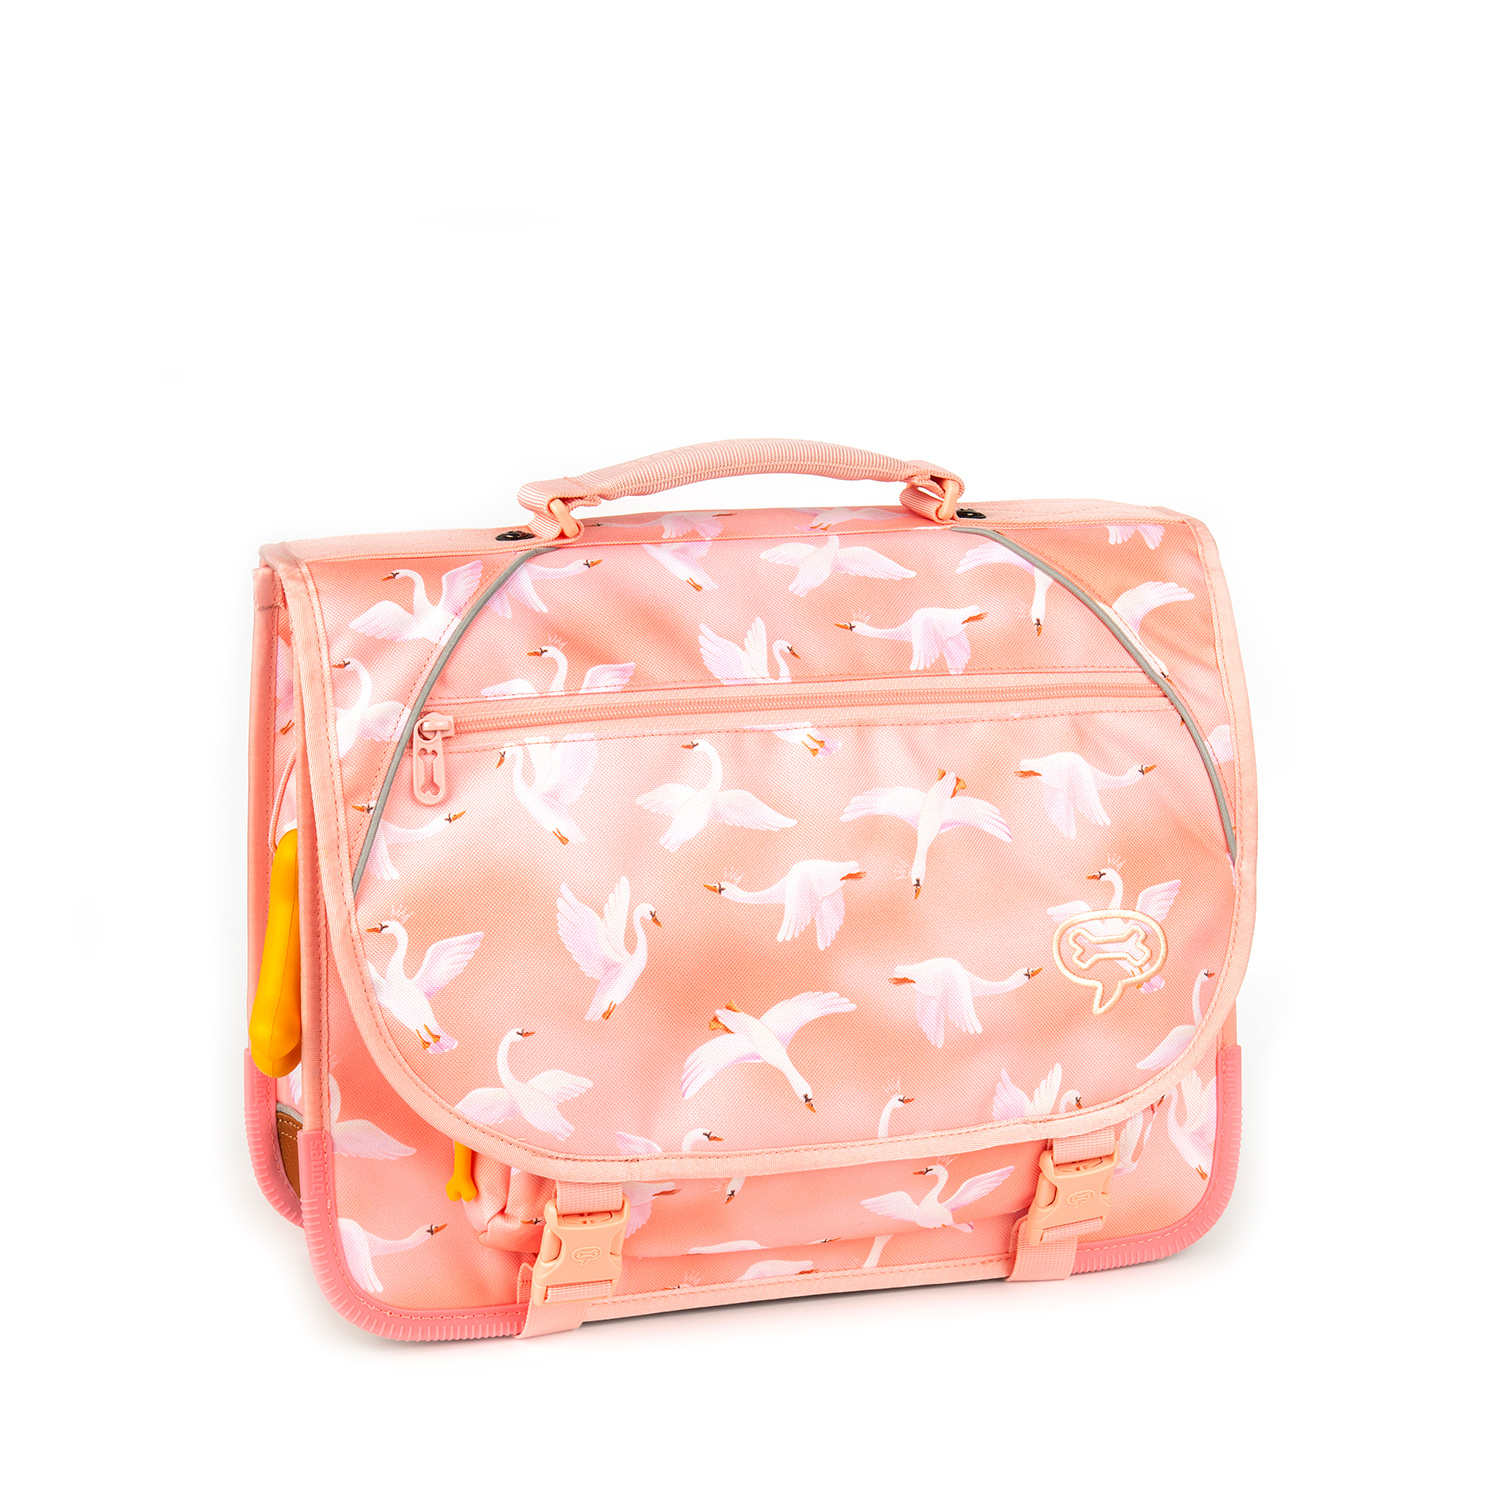 Lily - SWANS pink